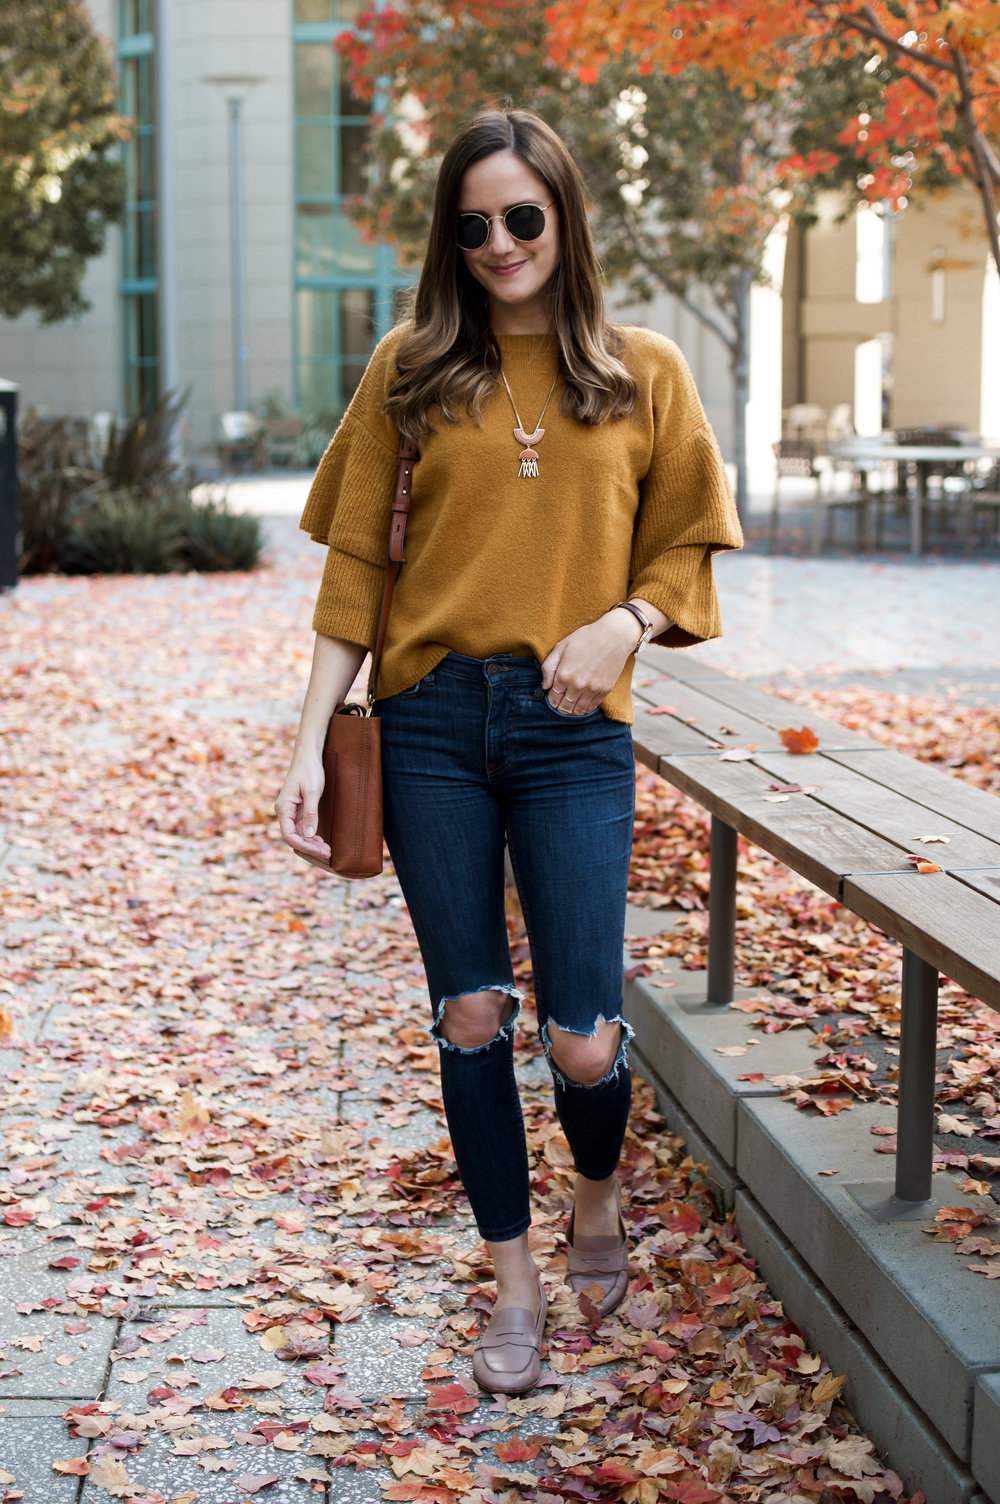 Mustard Sweater for Fall